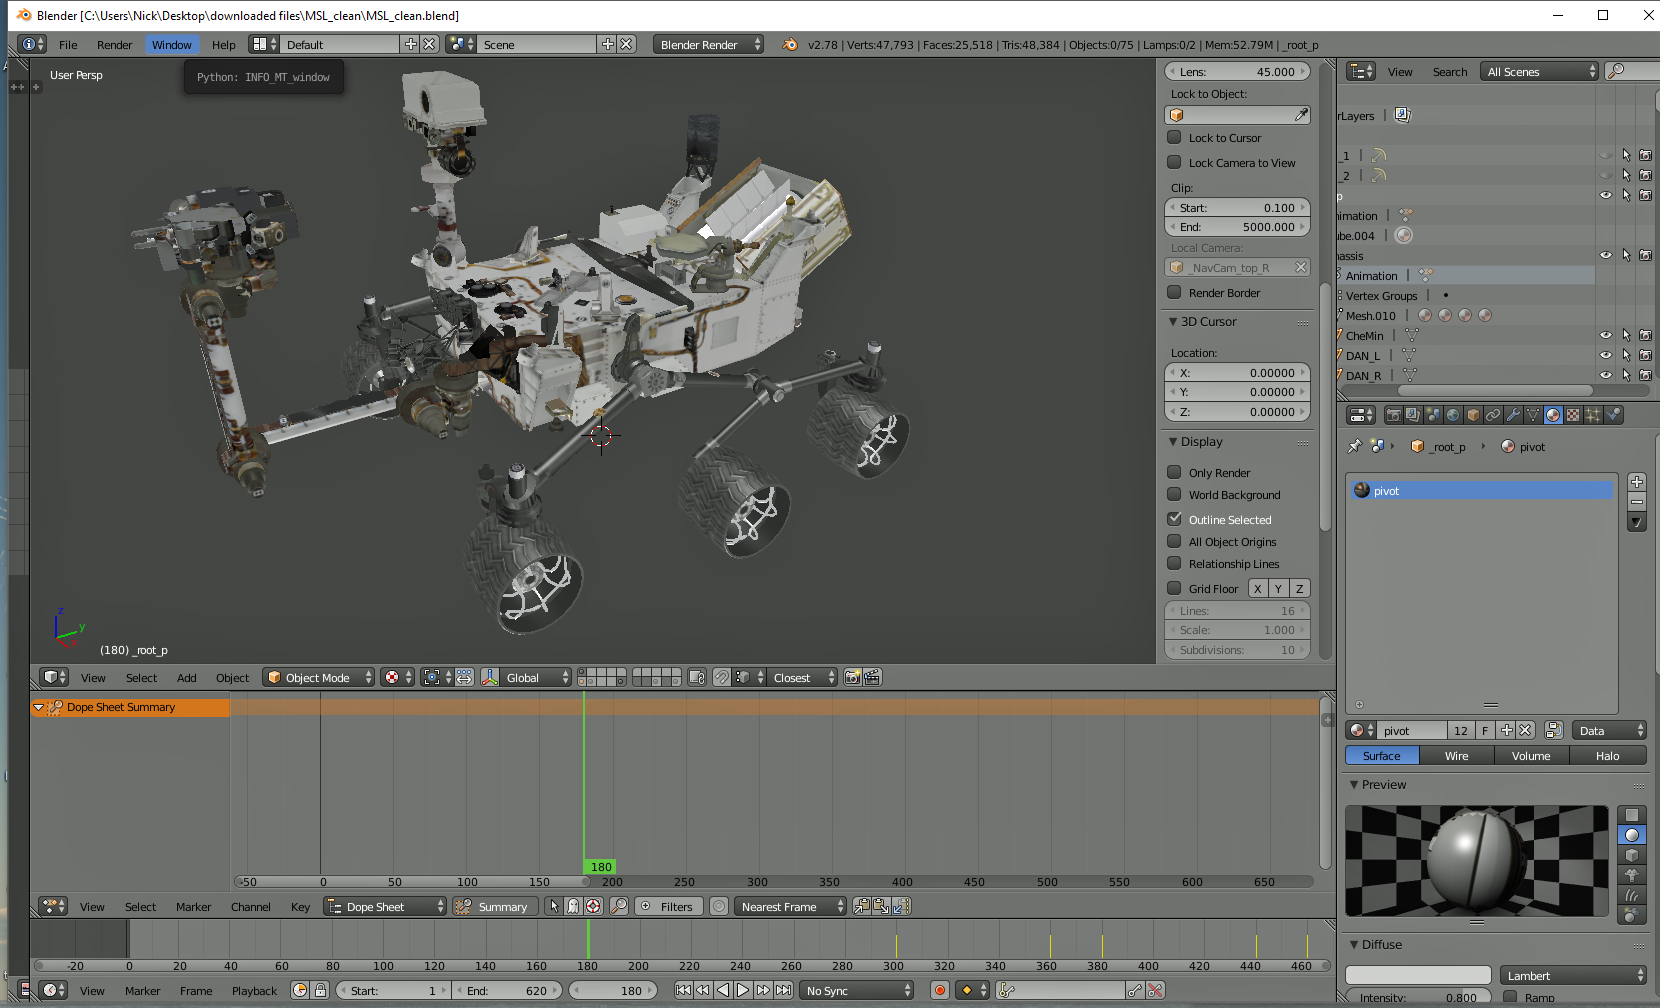 Blender model of the suriosity rover